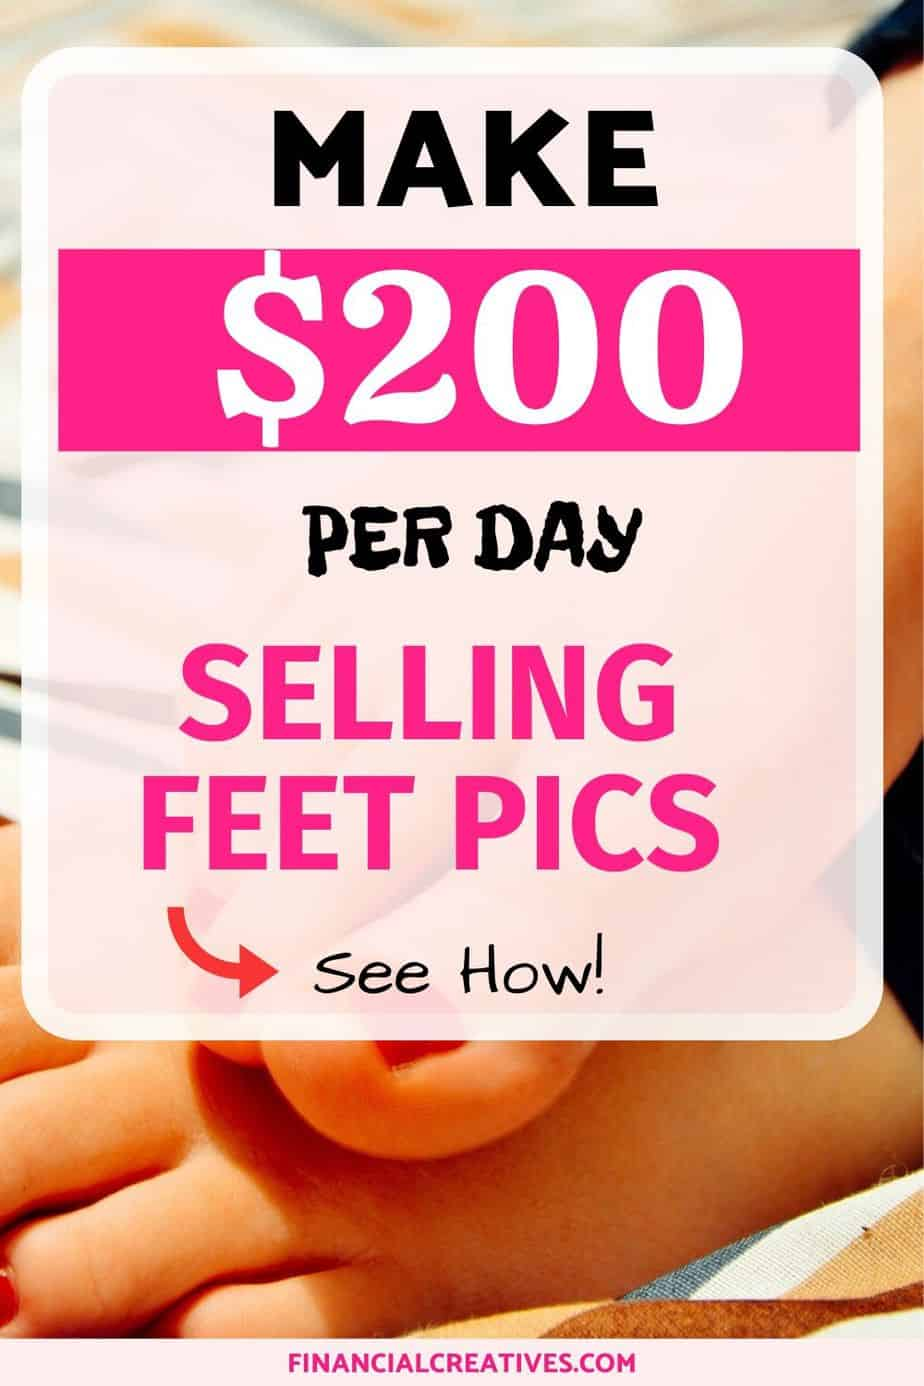 How to Sell Feet Pics Online and make $200 Per Day Fast!